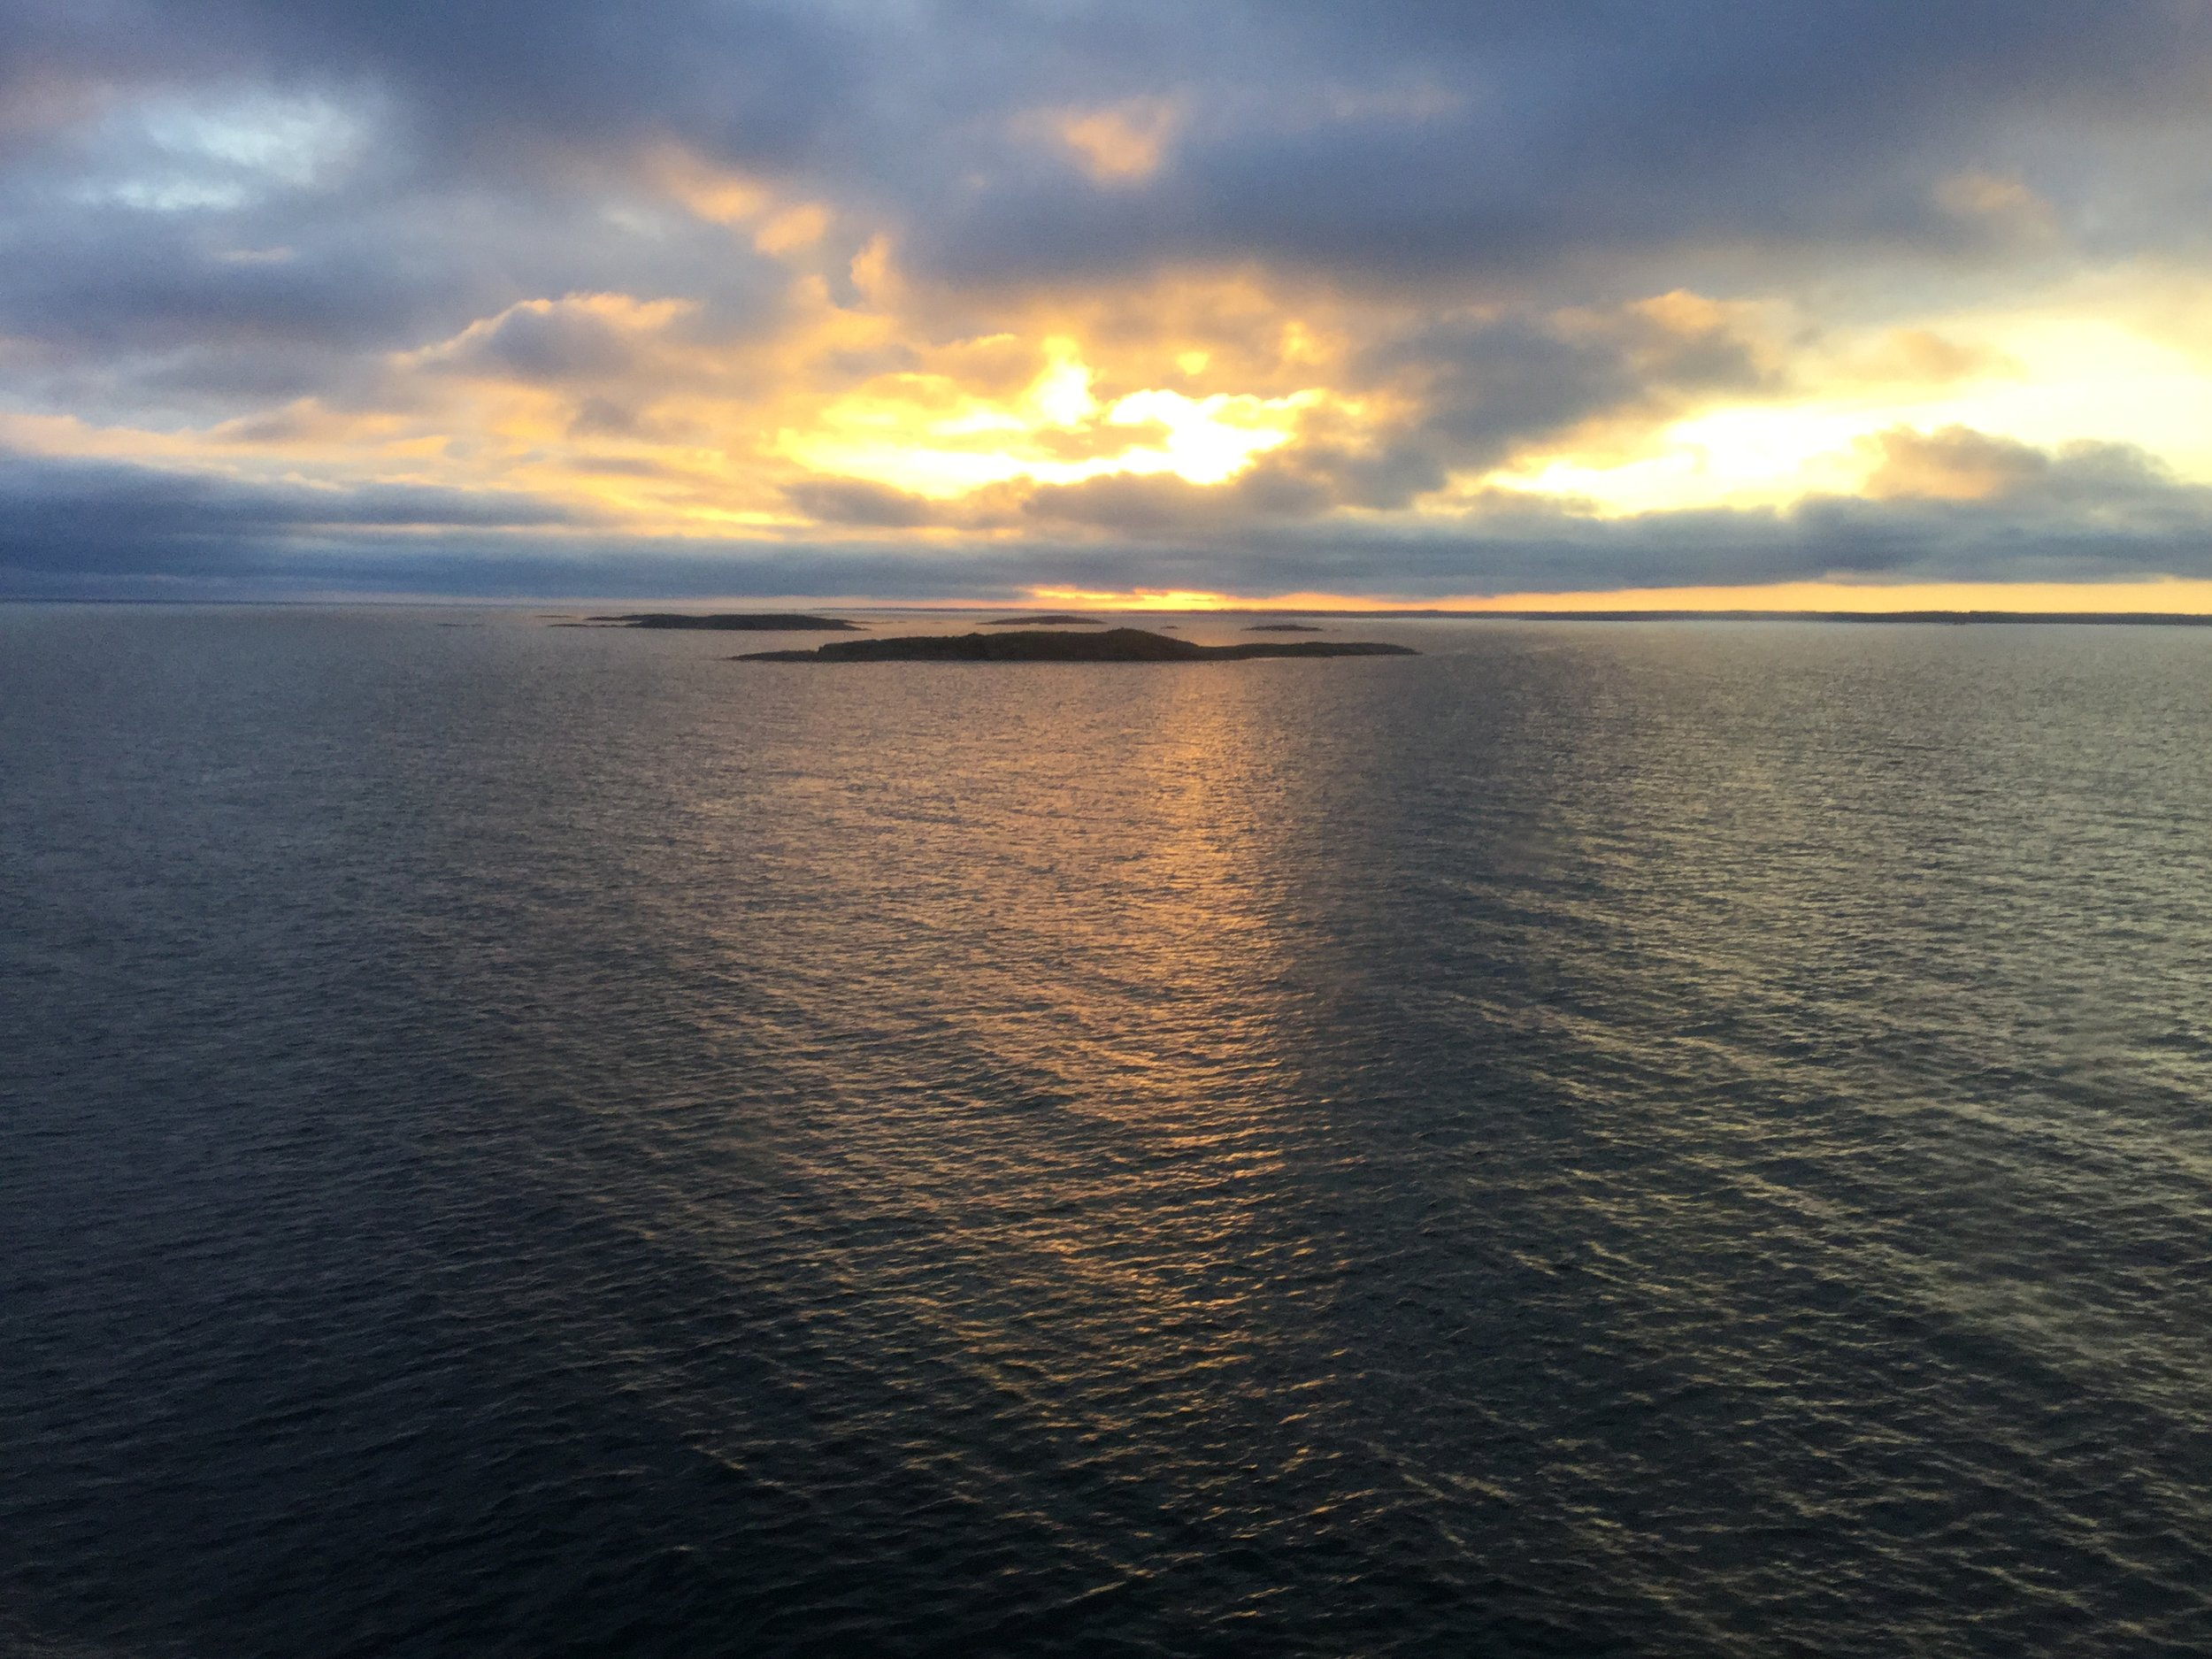 One of the many gorgeous views during the cruise. This was at around 10 pm, approaching Åland Islands.